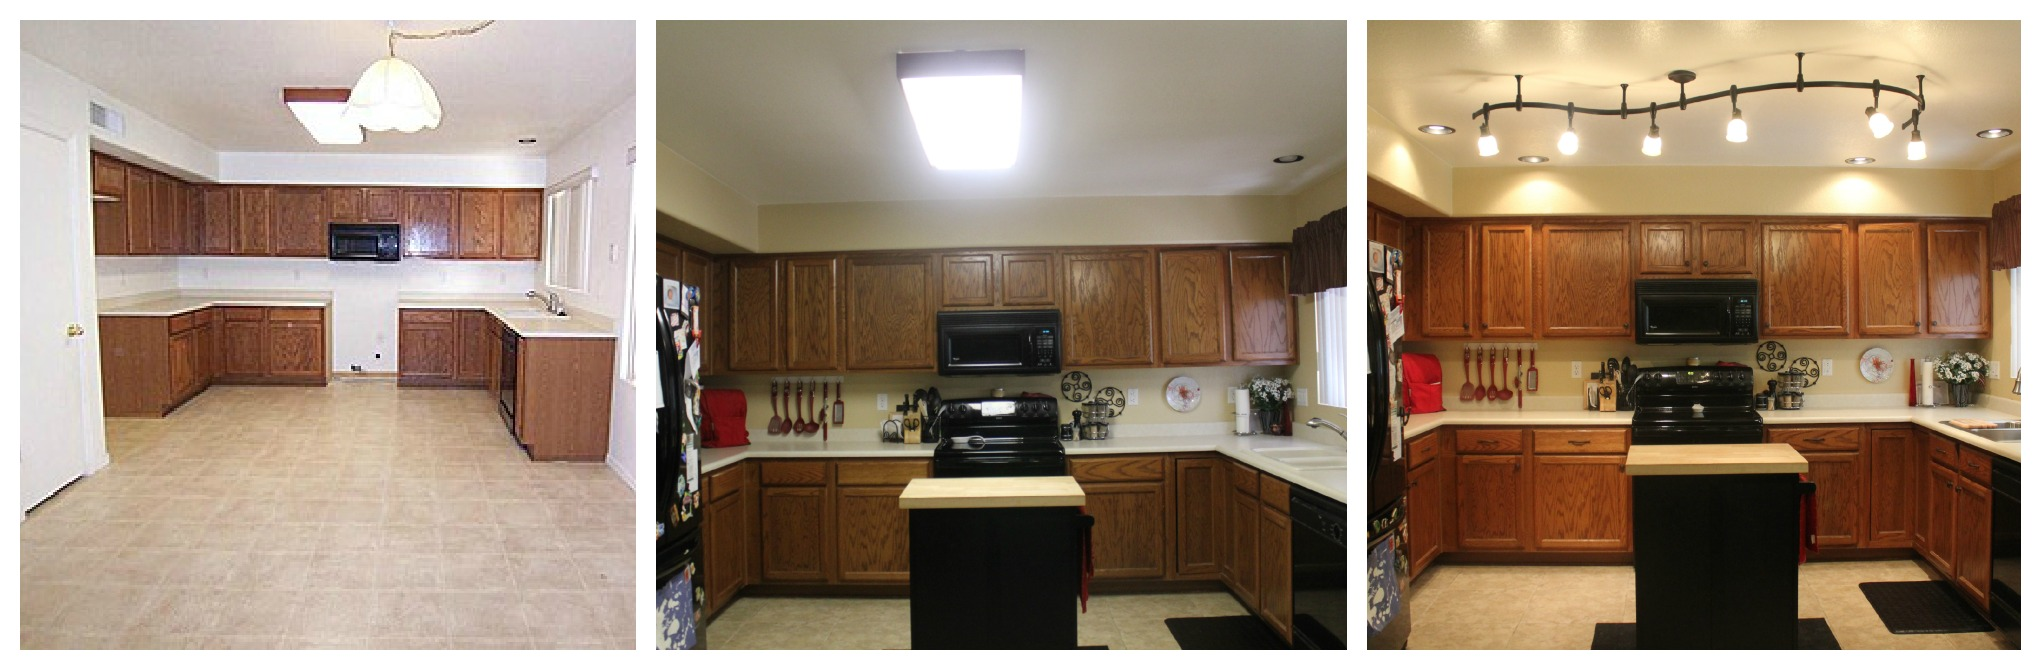 Kitchen Light Fixtures To Replace Fluorescent Home Decor